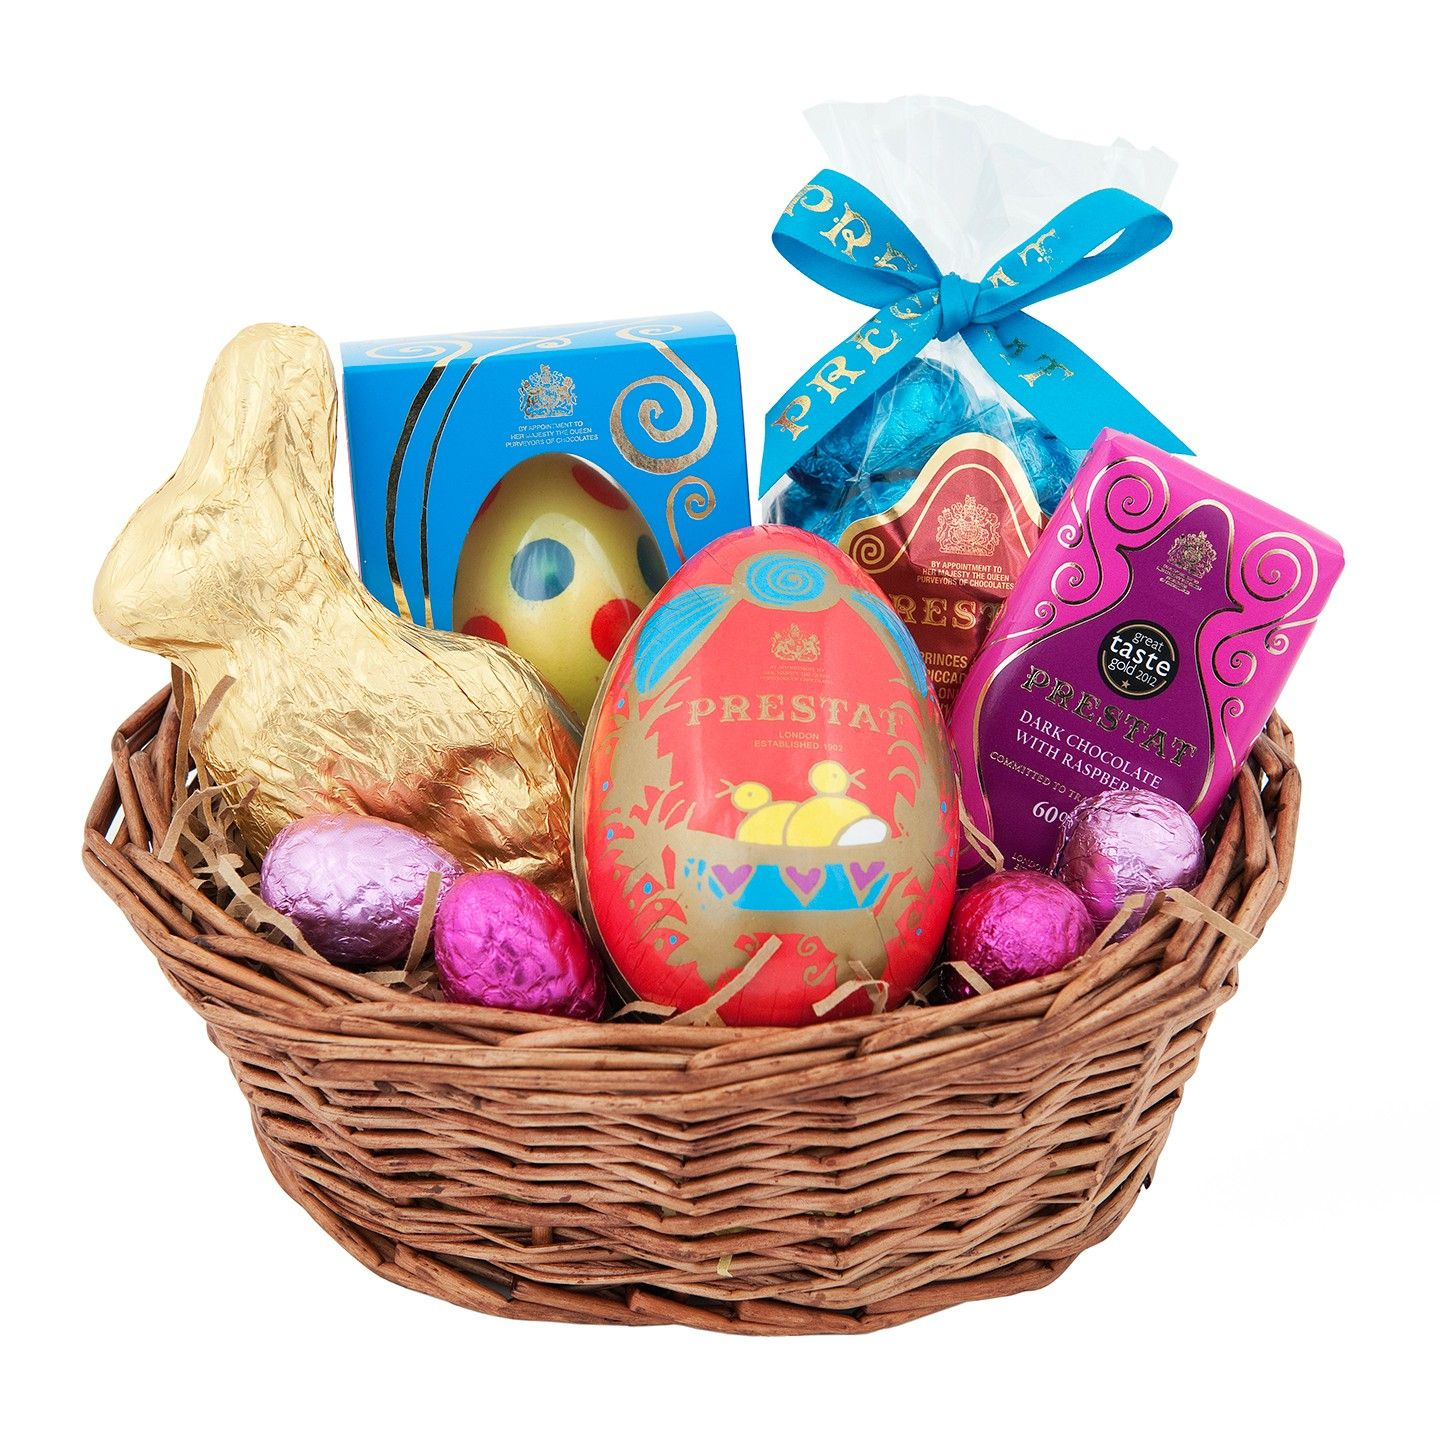 Prestat luxury chocolates hip hop bunny in a basket royal mr prestat luxury chocolates hip hop bunny in a basket negle